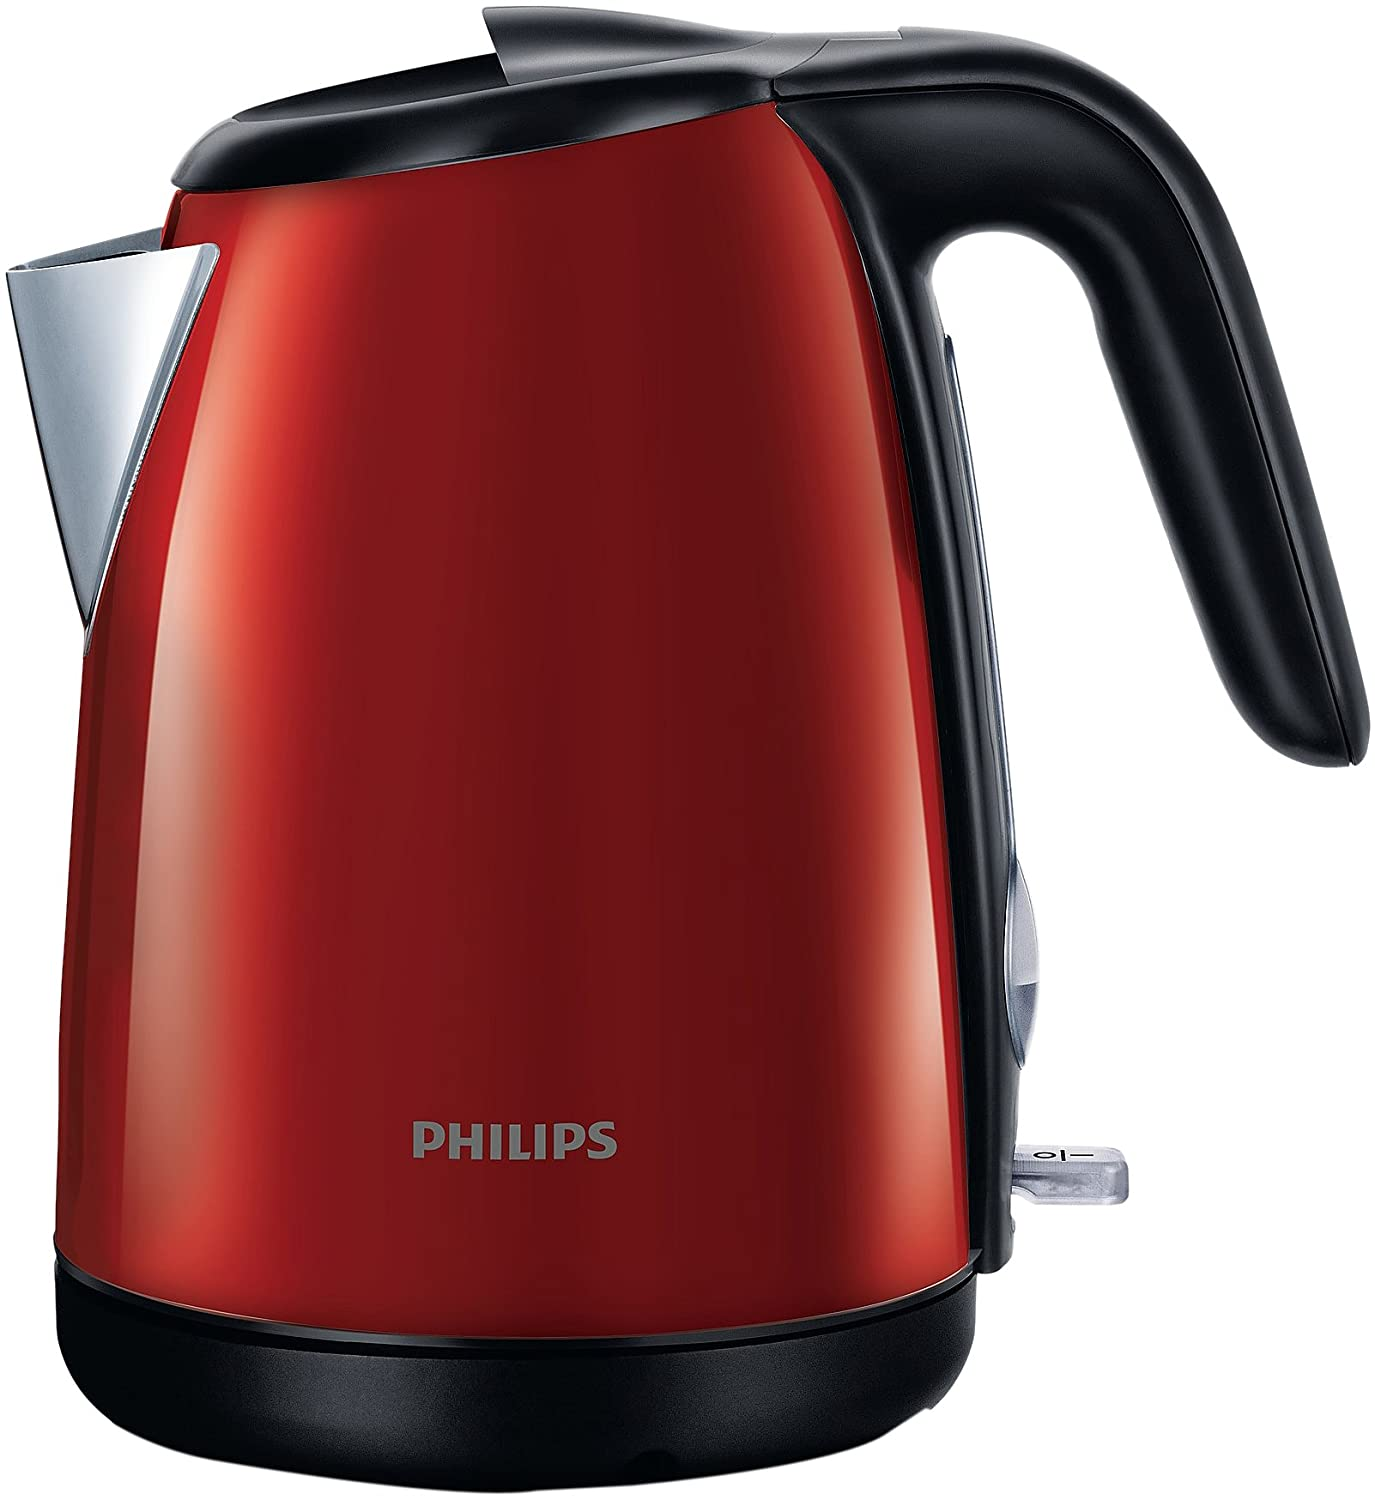 Best Rated Electric Kettle ~ Best auto shut off electric kettles list and reviews